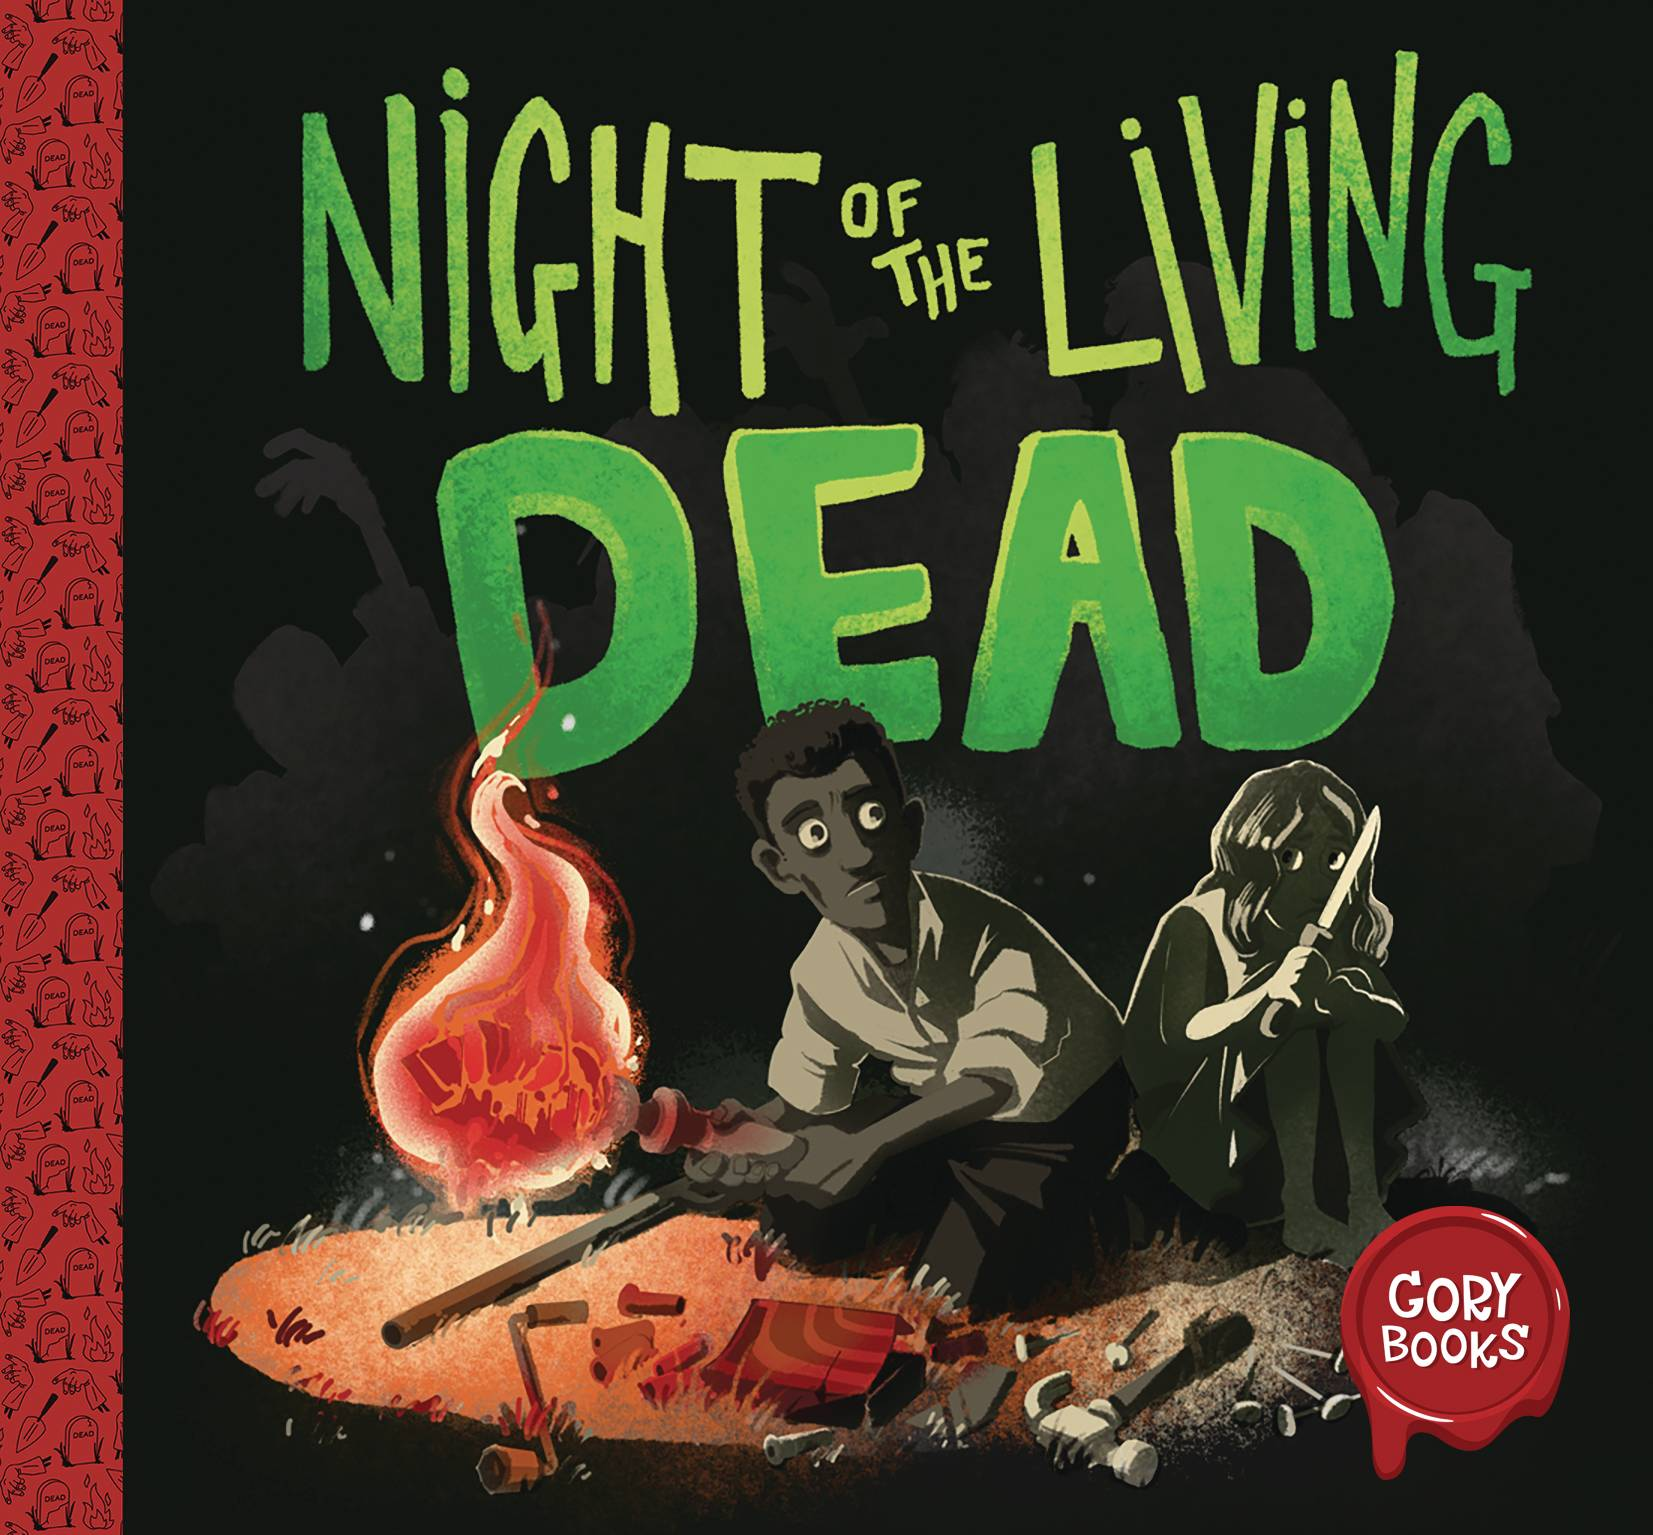 GORY BOOKS TP 01 NIGHT OF THE LIVING DEAD